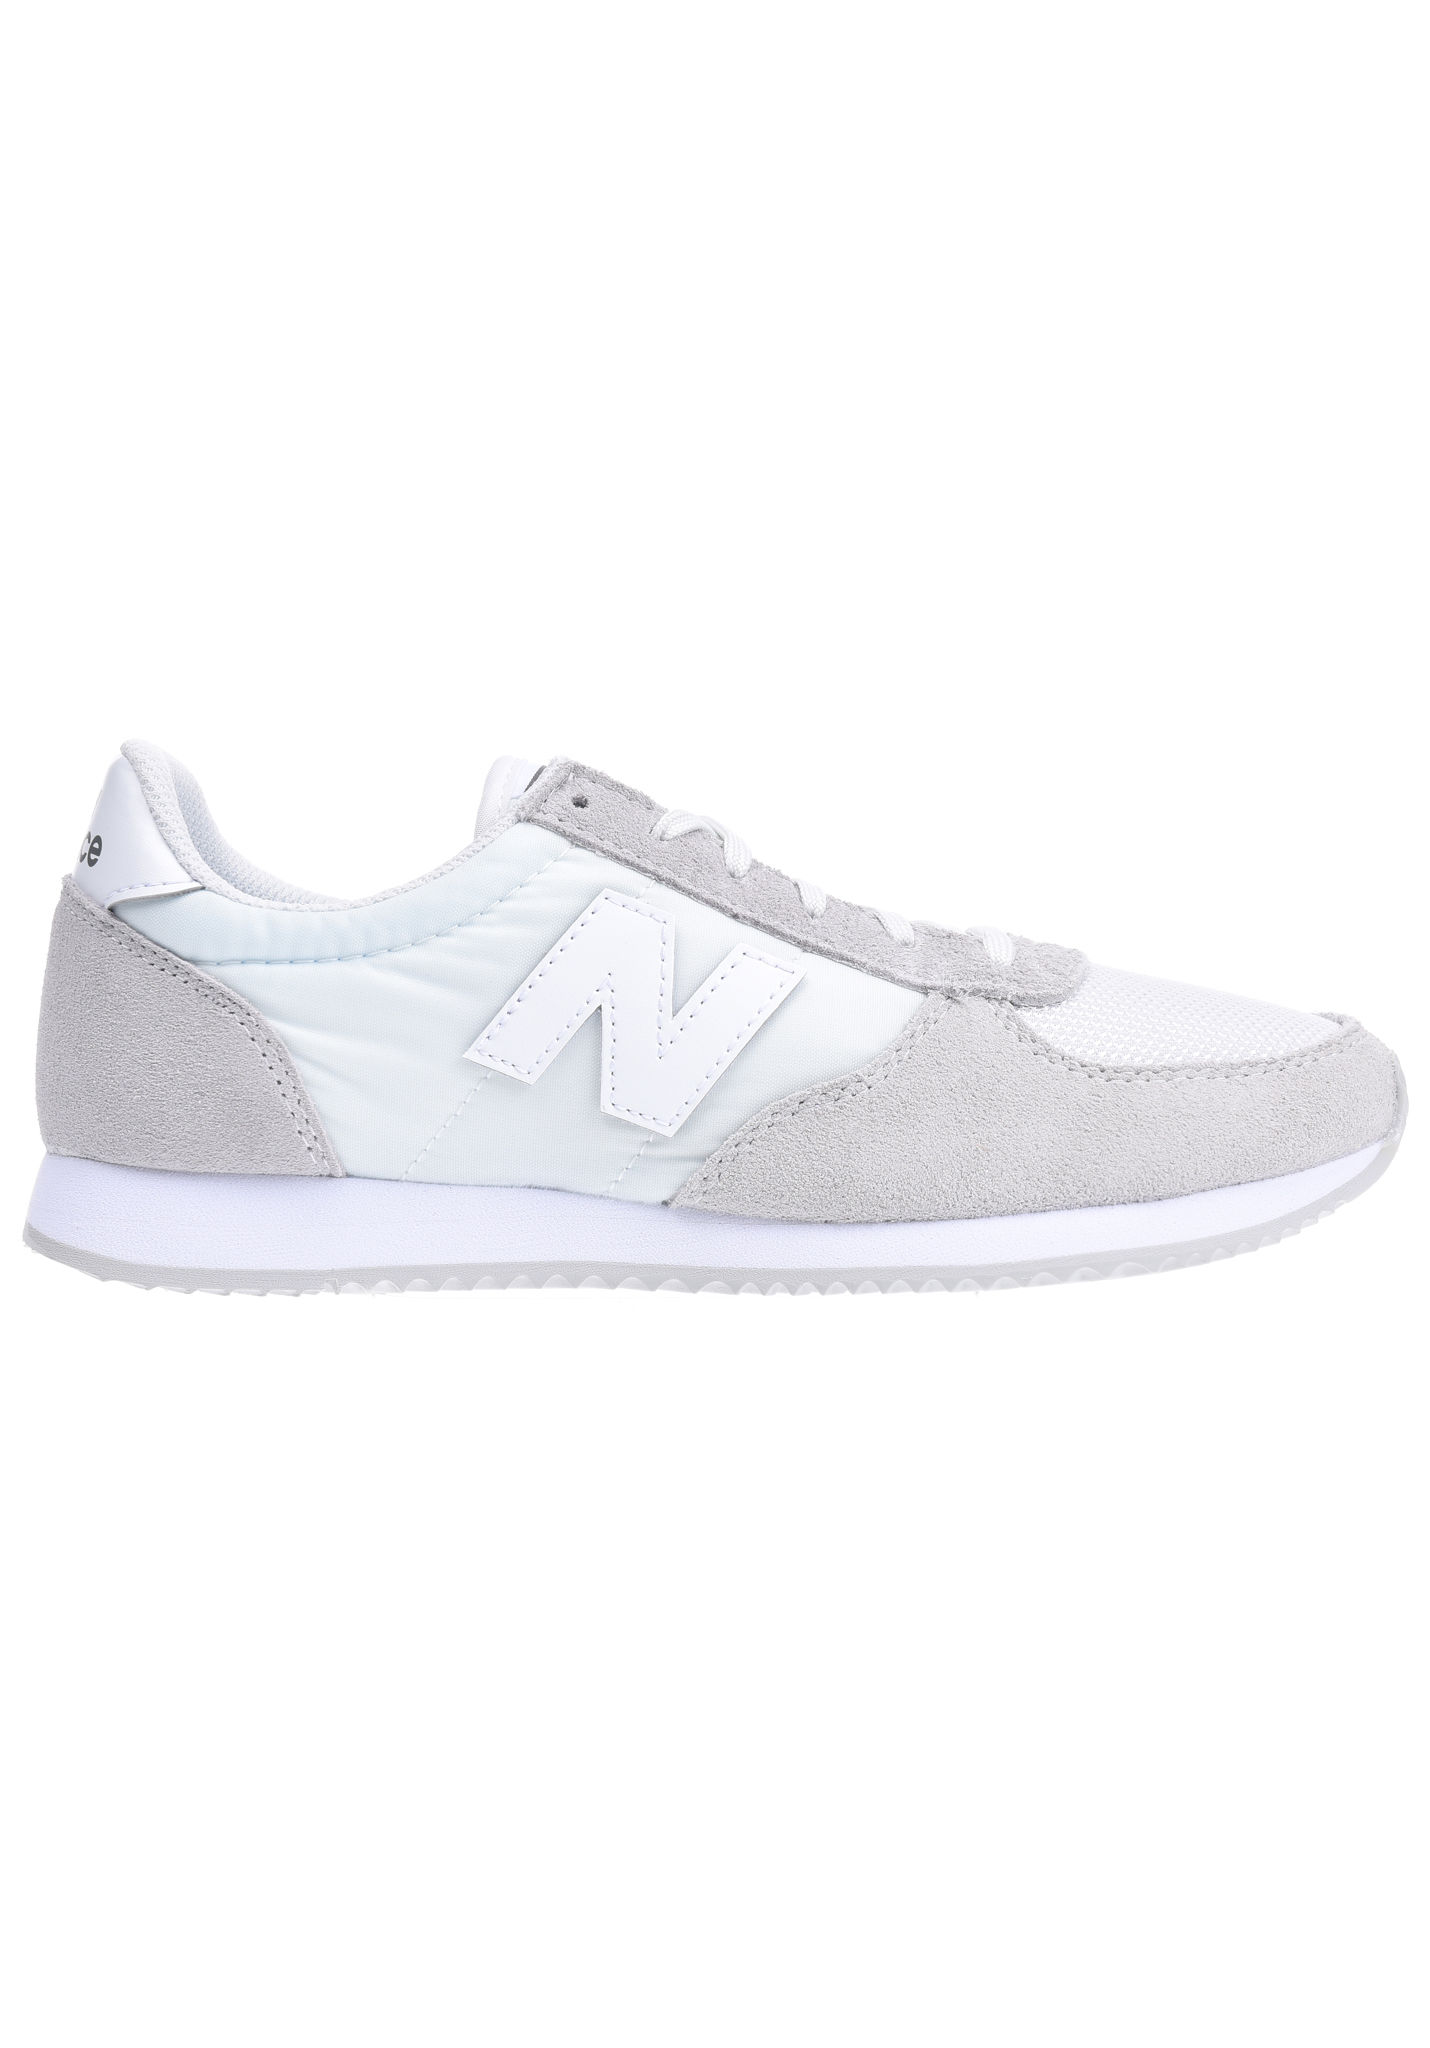 NEW BALANCE WL220 B Sneakers for Women Grey